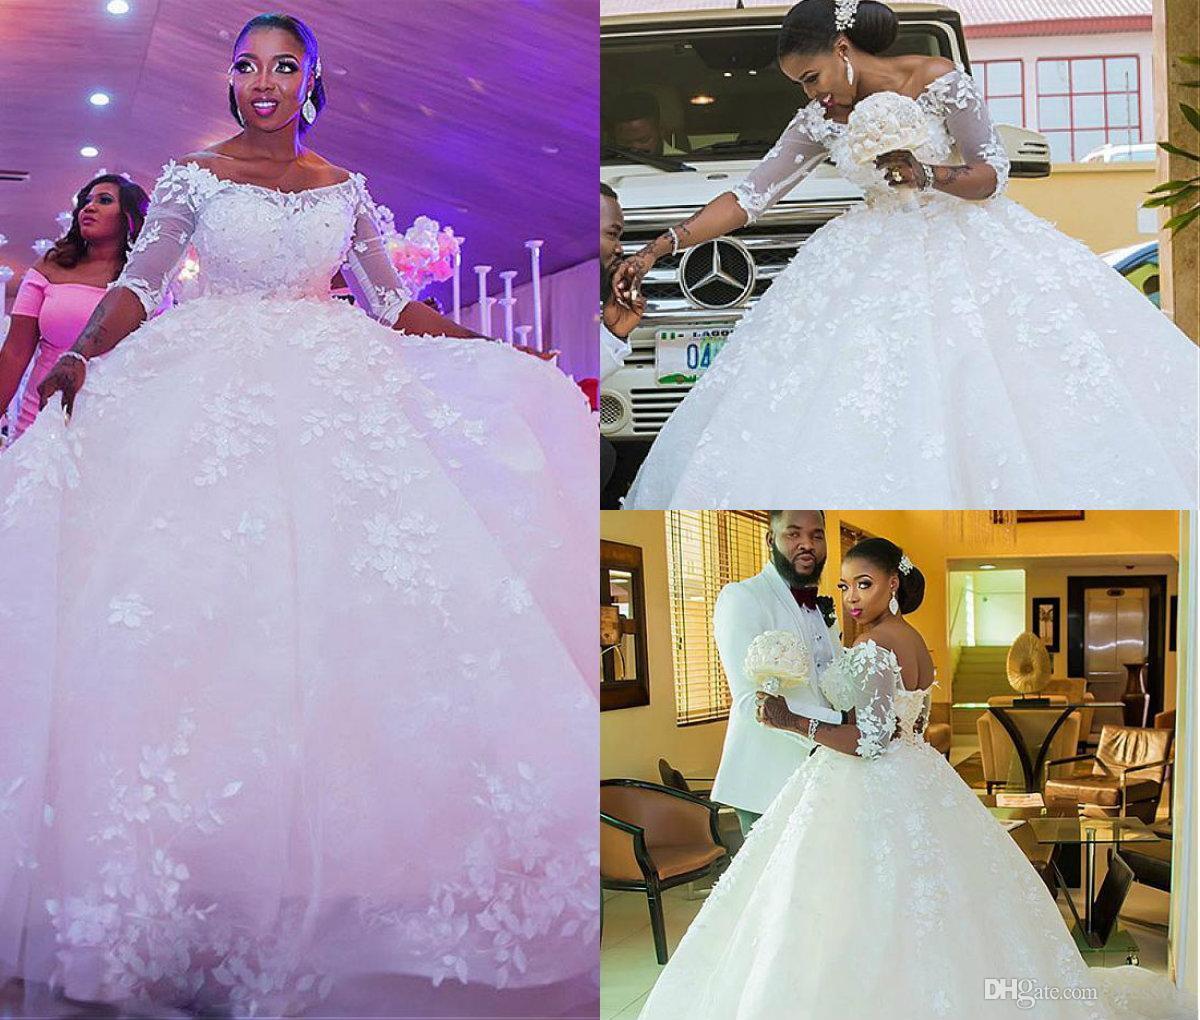 9779feda22086 2018 African Plus Size Wedding Dresses 3D Floral Applique Beaded Off  Shoulder Ball Gown Wedding Dress 3/4 Long Sleeve Country Bridal Gown  Wedding Dresses ...